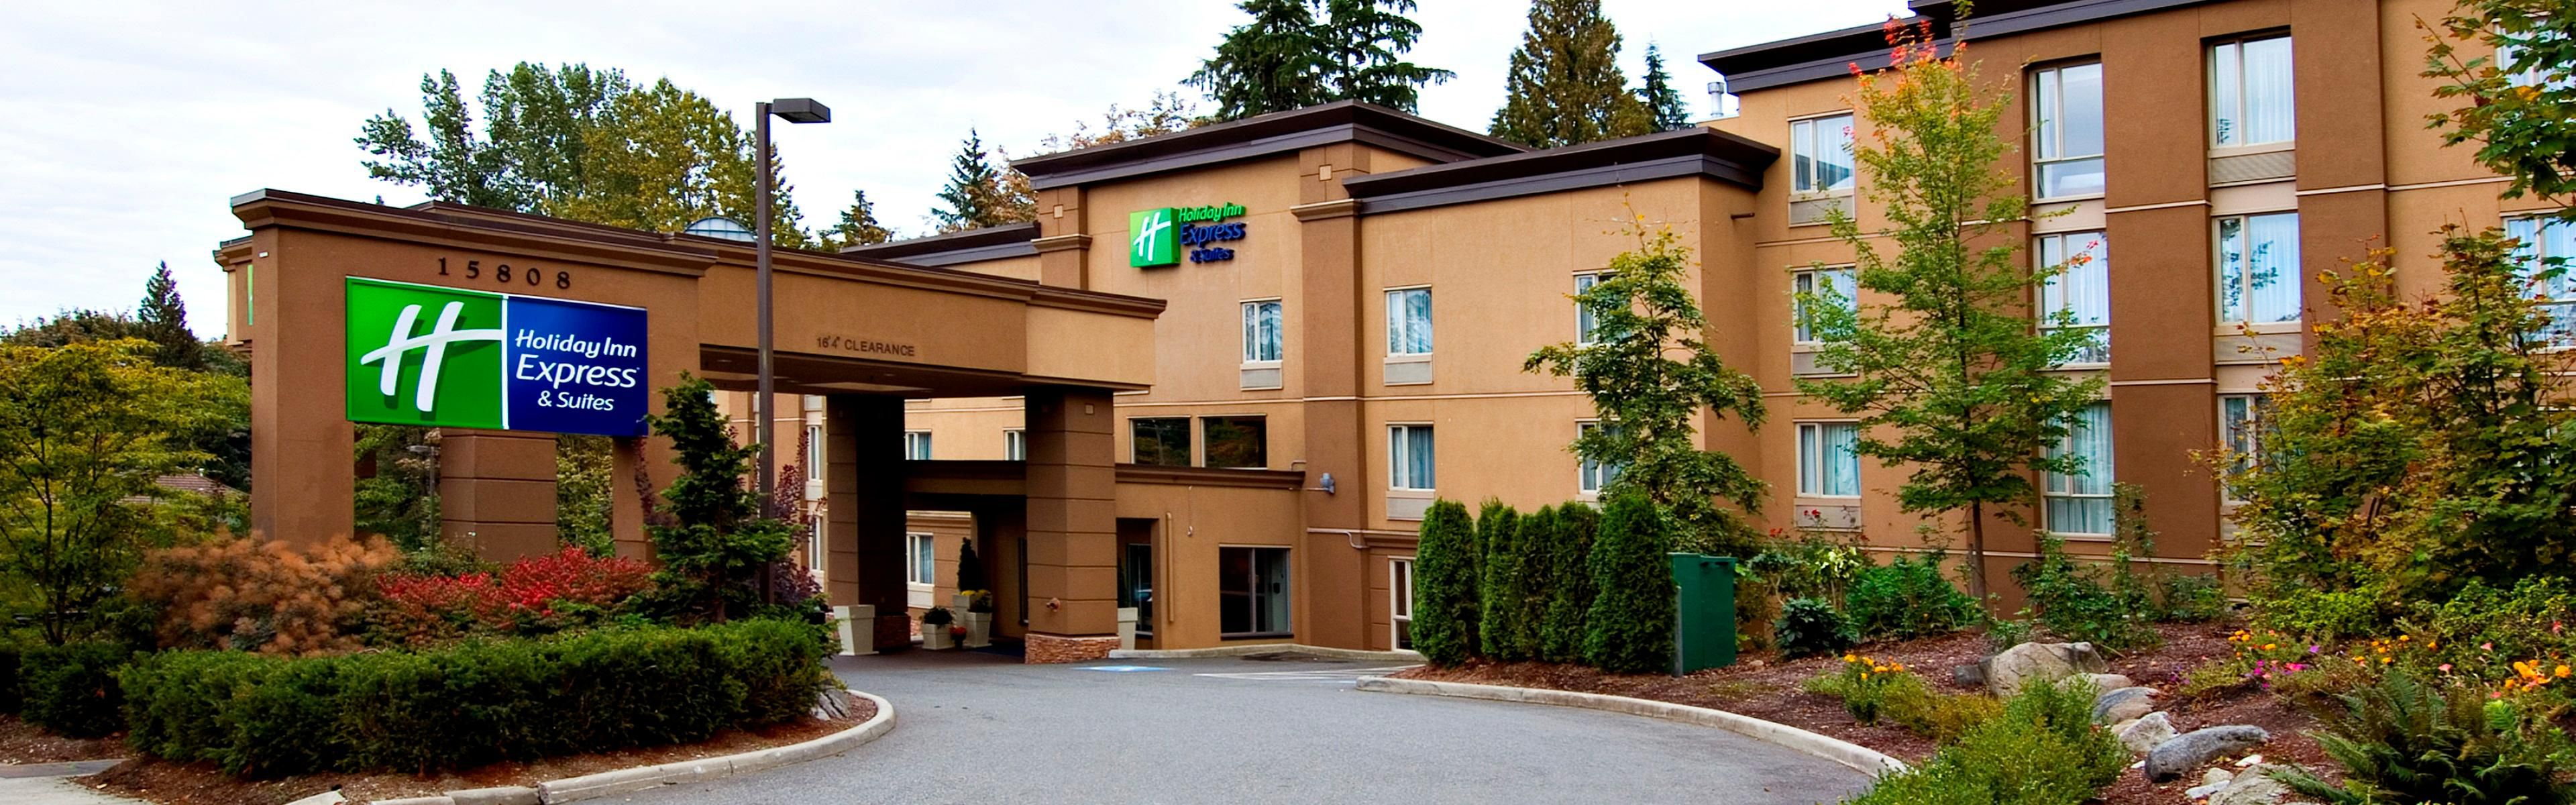 Hotels In Surrey -  21 - 40 Results Out Of 96